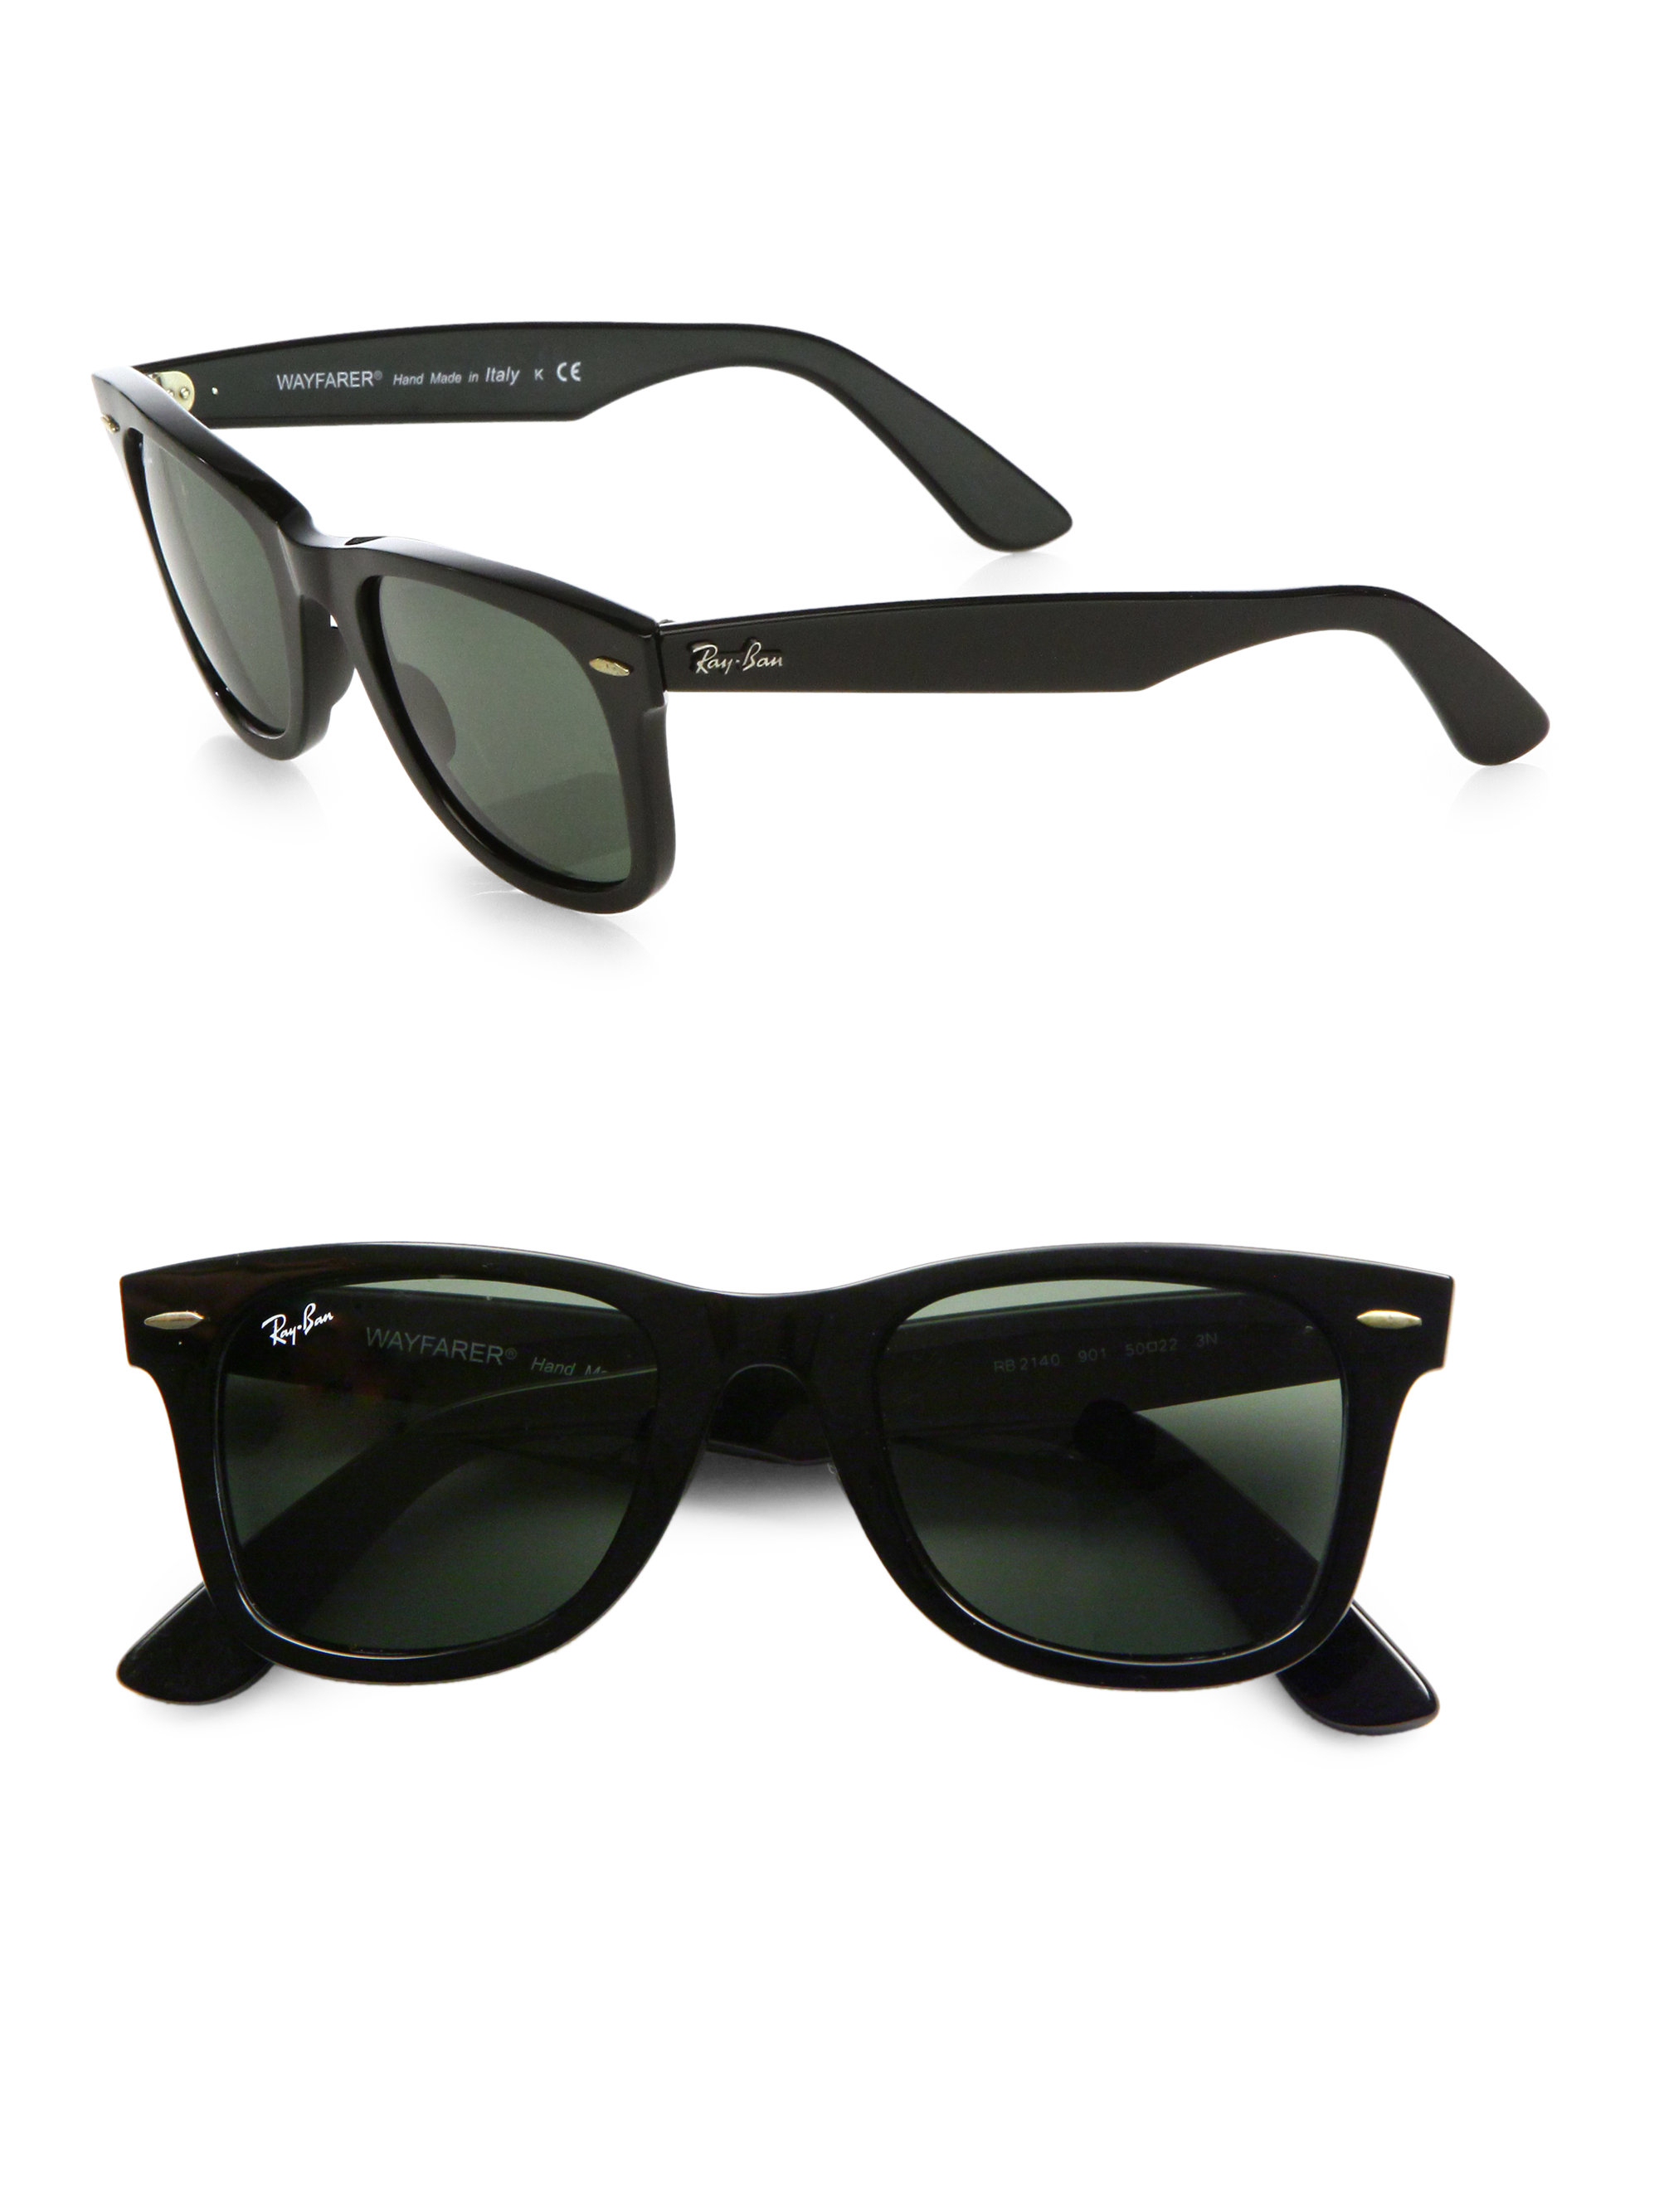 ray ban classic wayfarer sunglasses in black for men lyst. Black Bedroom Furniture Sets. Home Design Ideas